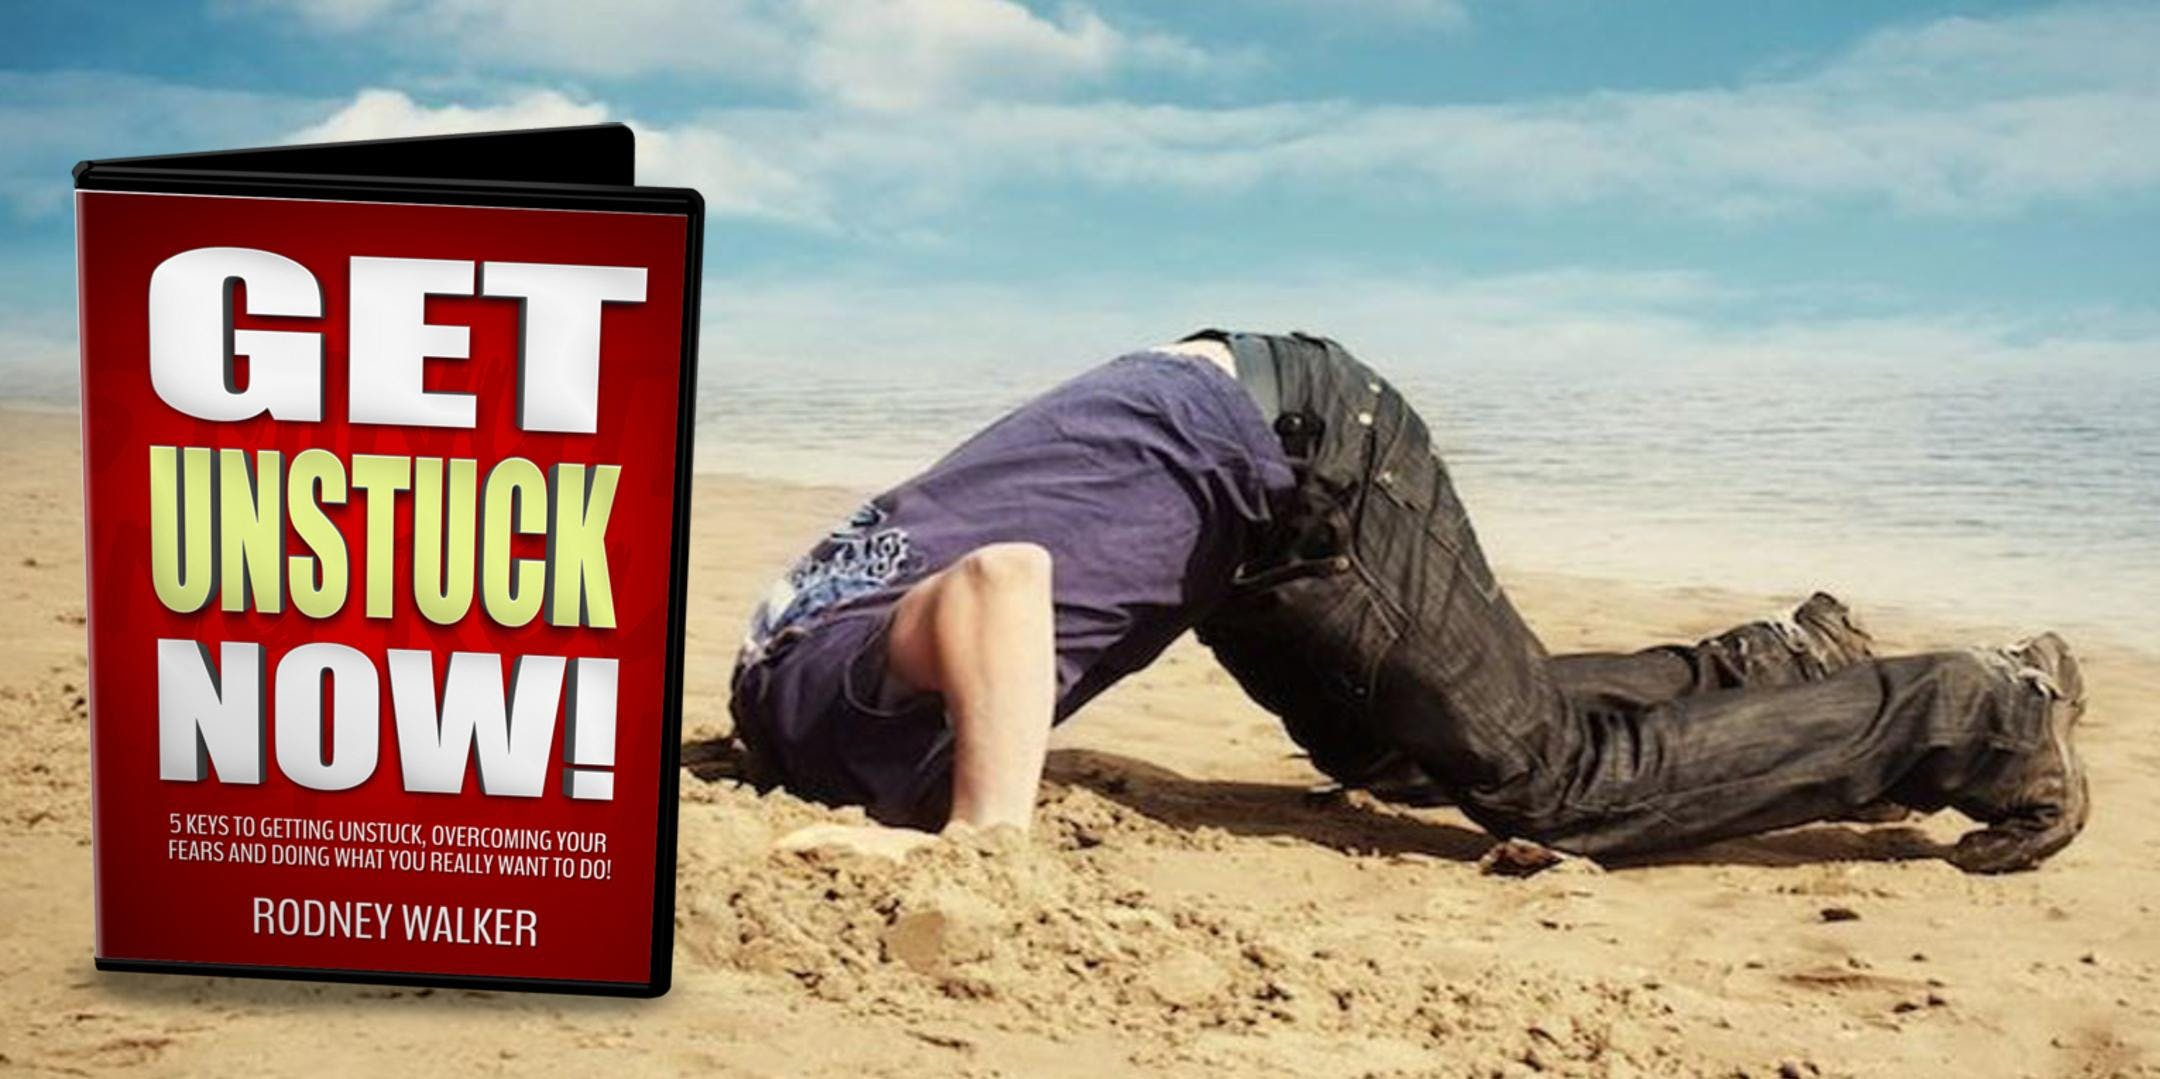 Life Coaching - GET UNSTUCK NOW! New Beginnin